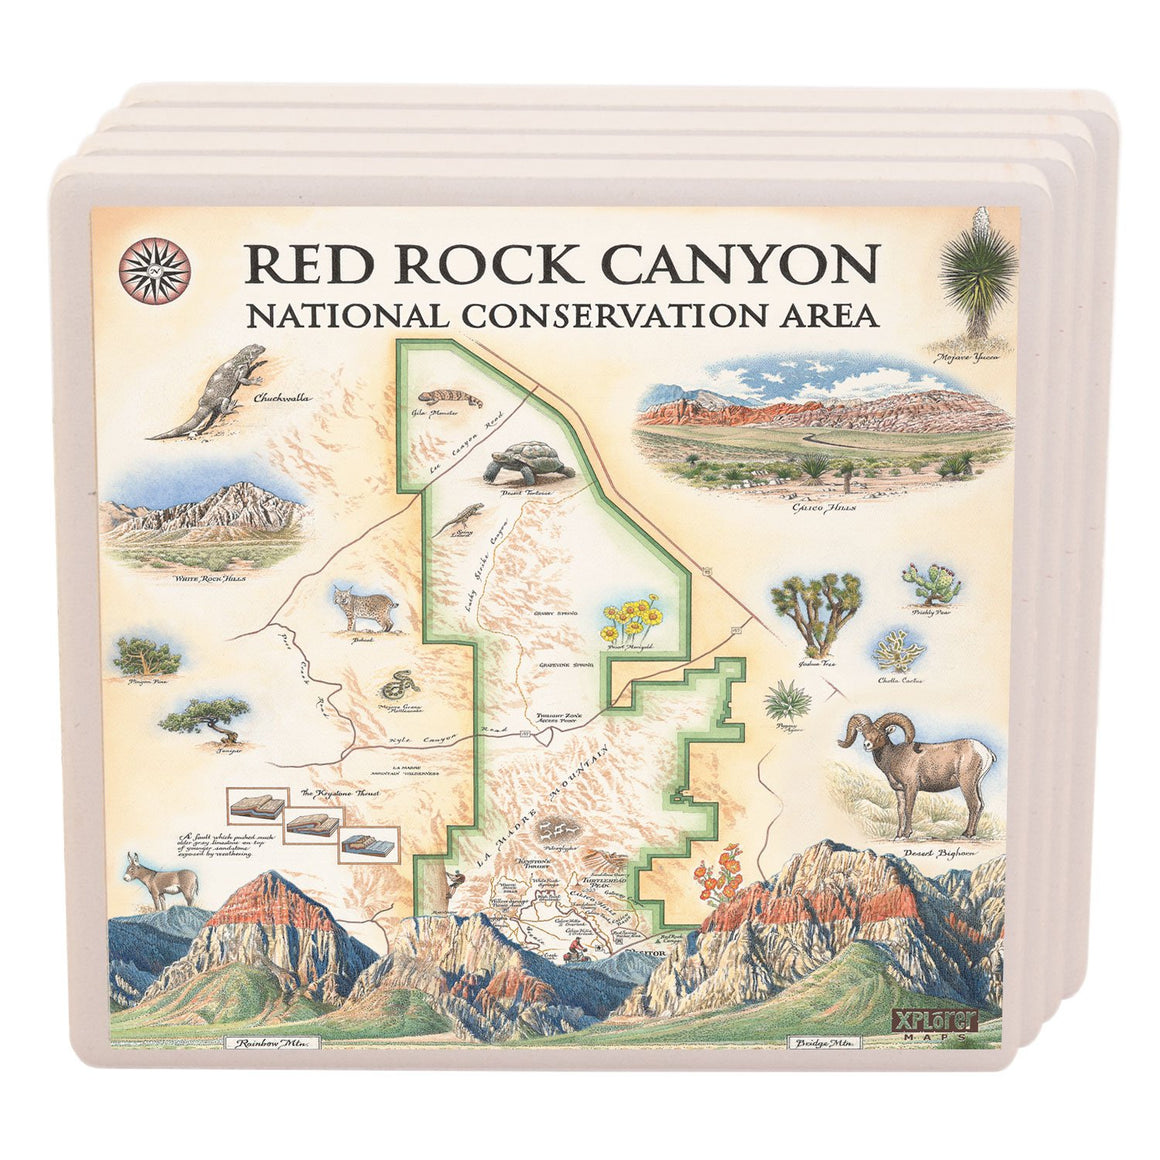 Red Rock Canyon National Conservation Area Map Wall Art Poster Authentic Hand Drawn Maps in Old World Antique Style Lithographic Print